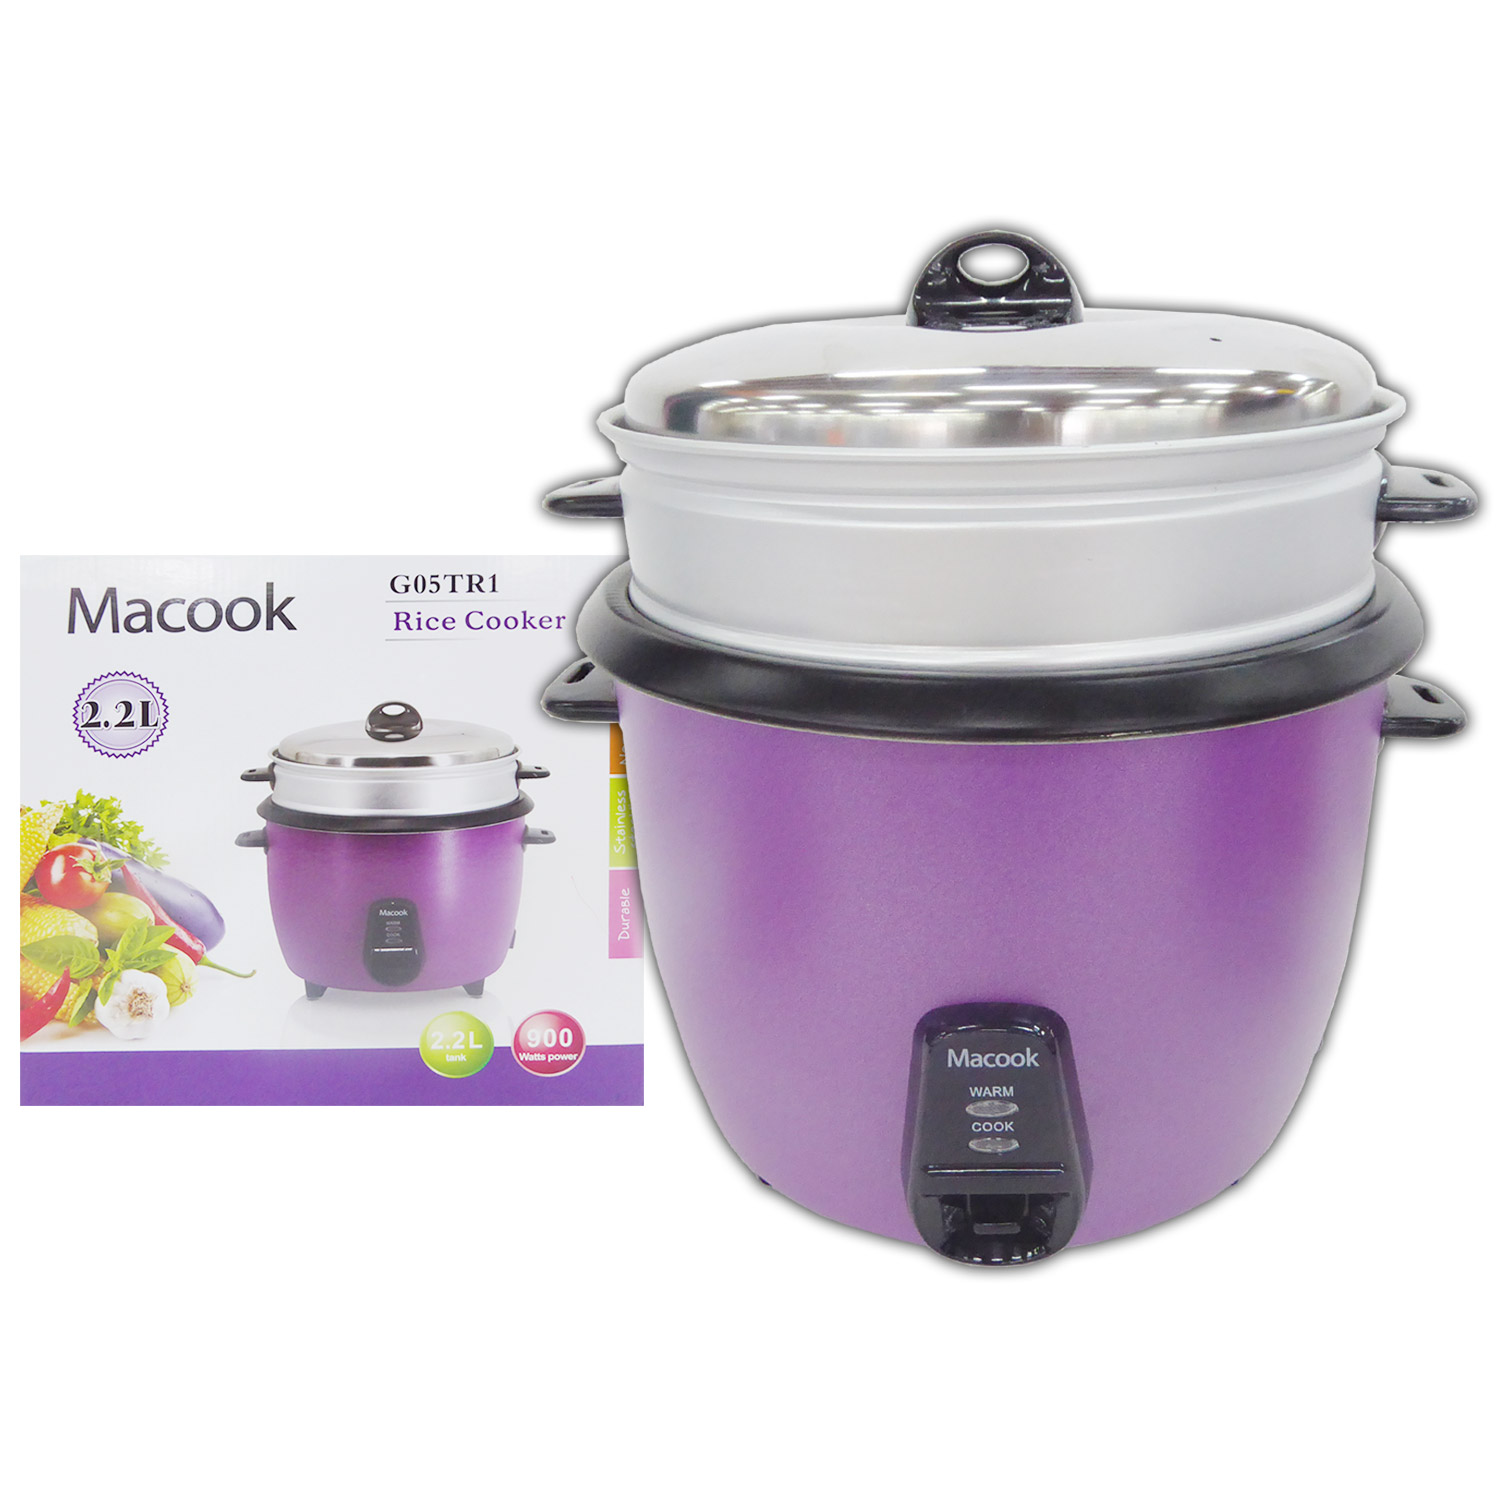 Macook Rice Cooker with Steamer - 2.2Ltr - 15 cups